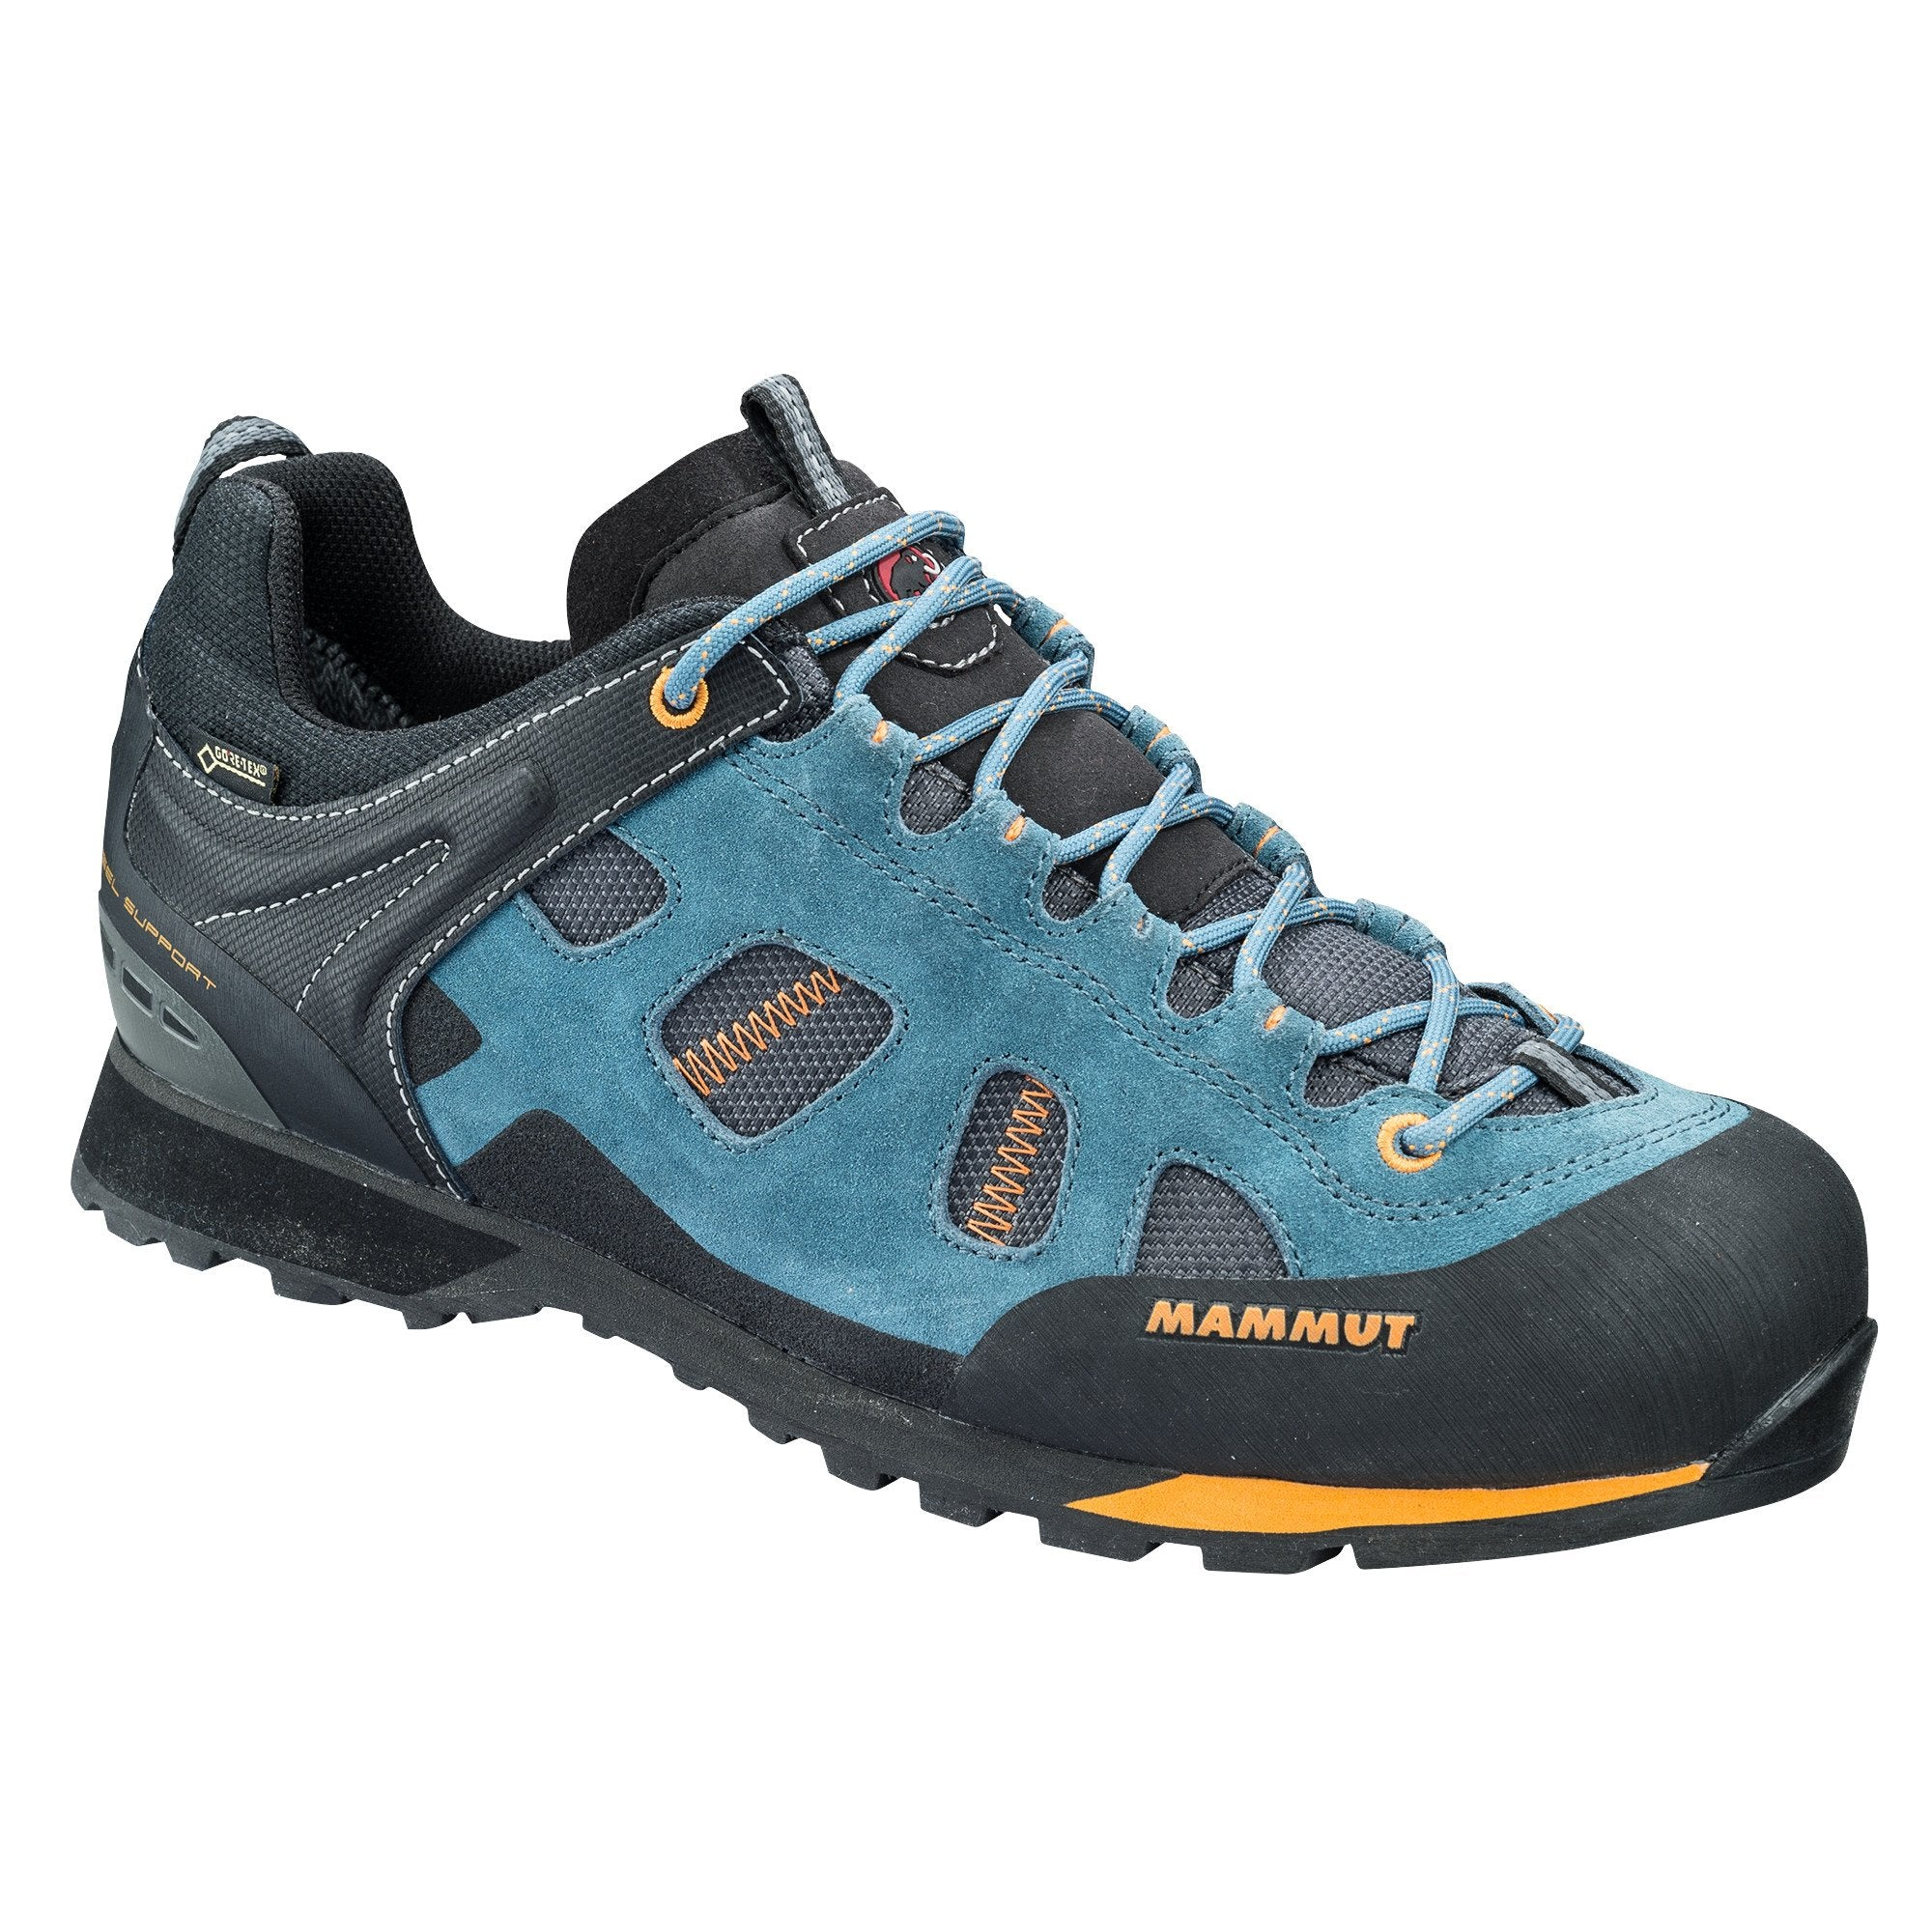 Mammut Ayako Low GTX approach shoe in blue/black colours, outer side view